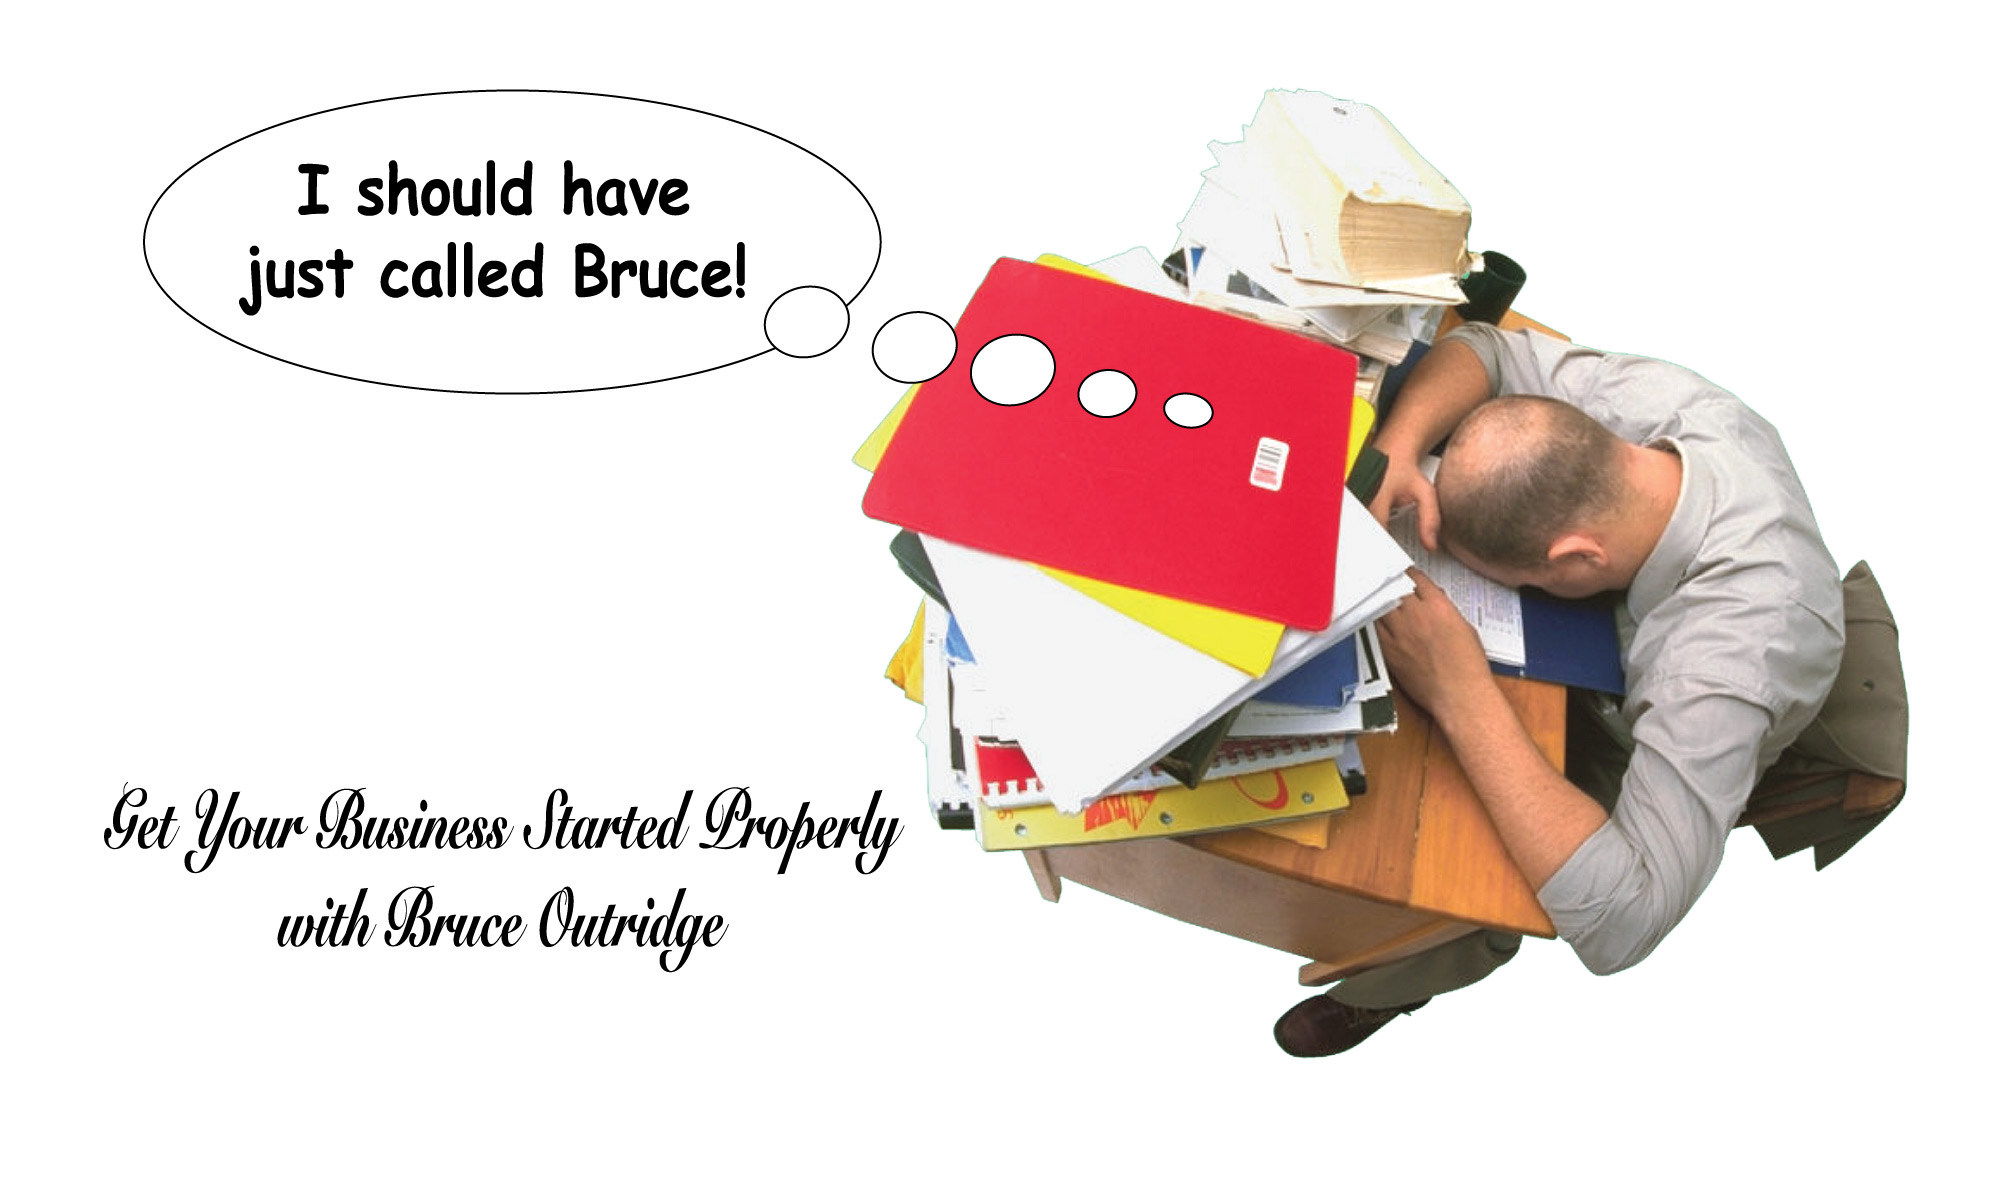 Start your business with Bruce Outridge